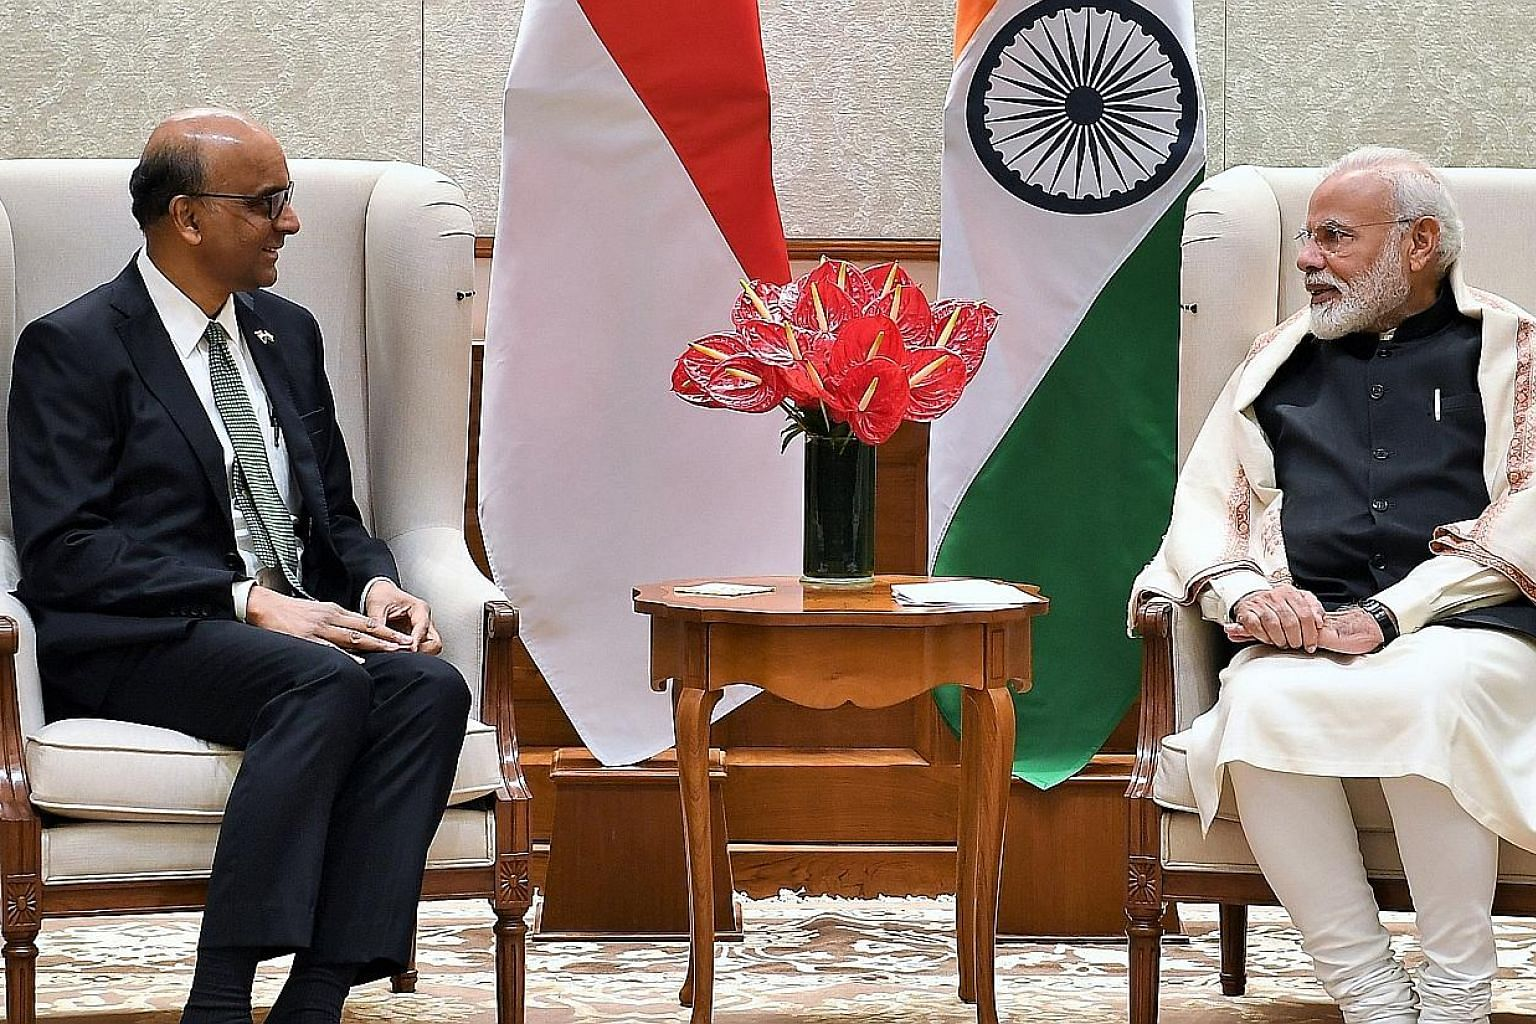 Senior Minister and Coordinating Minister for Social Policies Tharman Shanmugaratnam called on Indian Prime Minister Narendra Modi in New Delhi yesterday. Mr Tharman said they had a good discussion on India's economic and social strategies to ensure